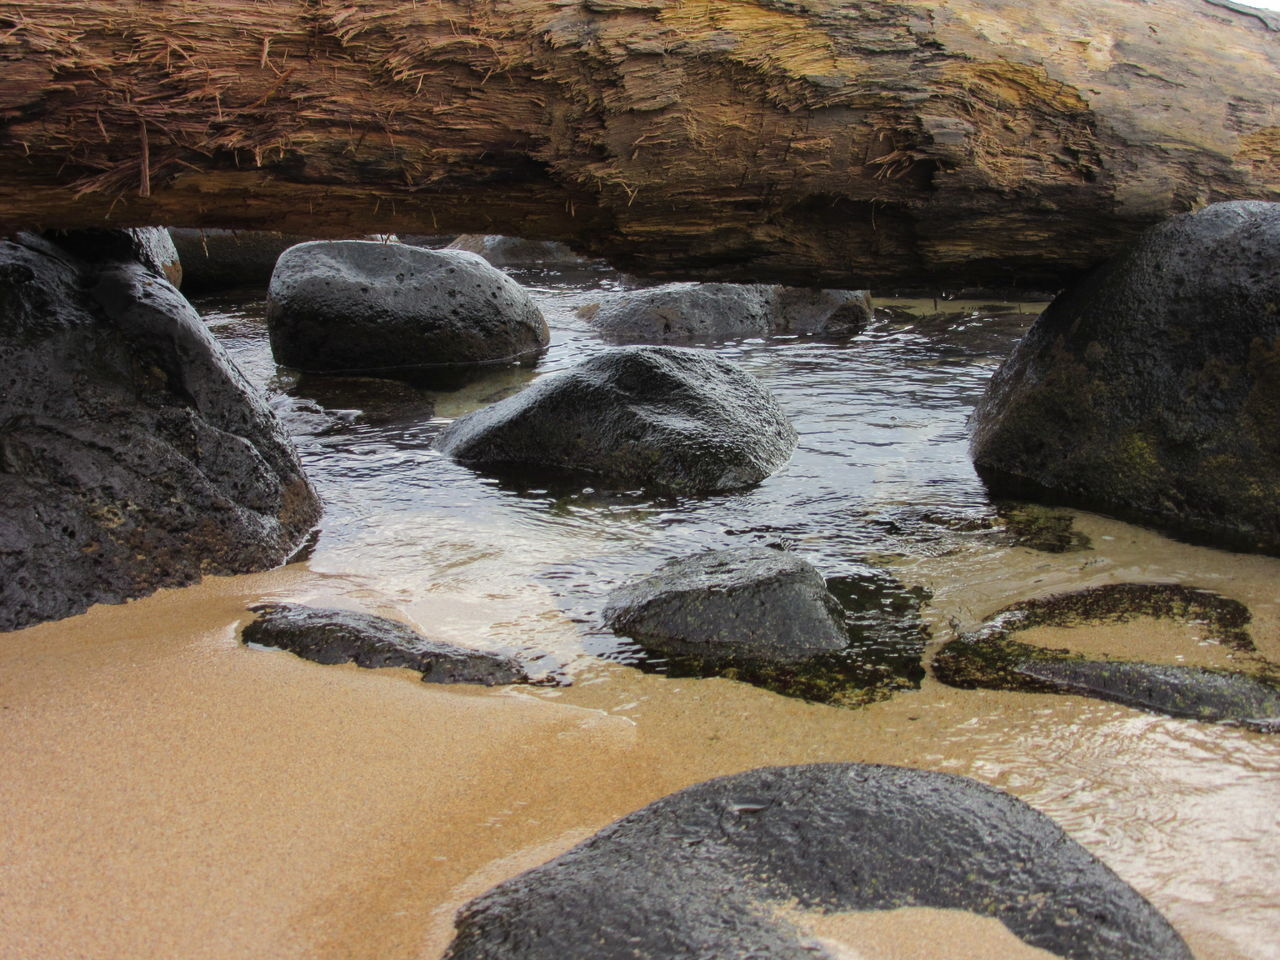 Nature Sand Beauty In Nature Outdoors Close-up Rocks And Water Driftwood Tide Tranquil Scene